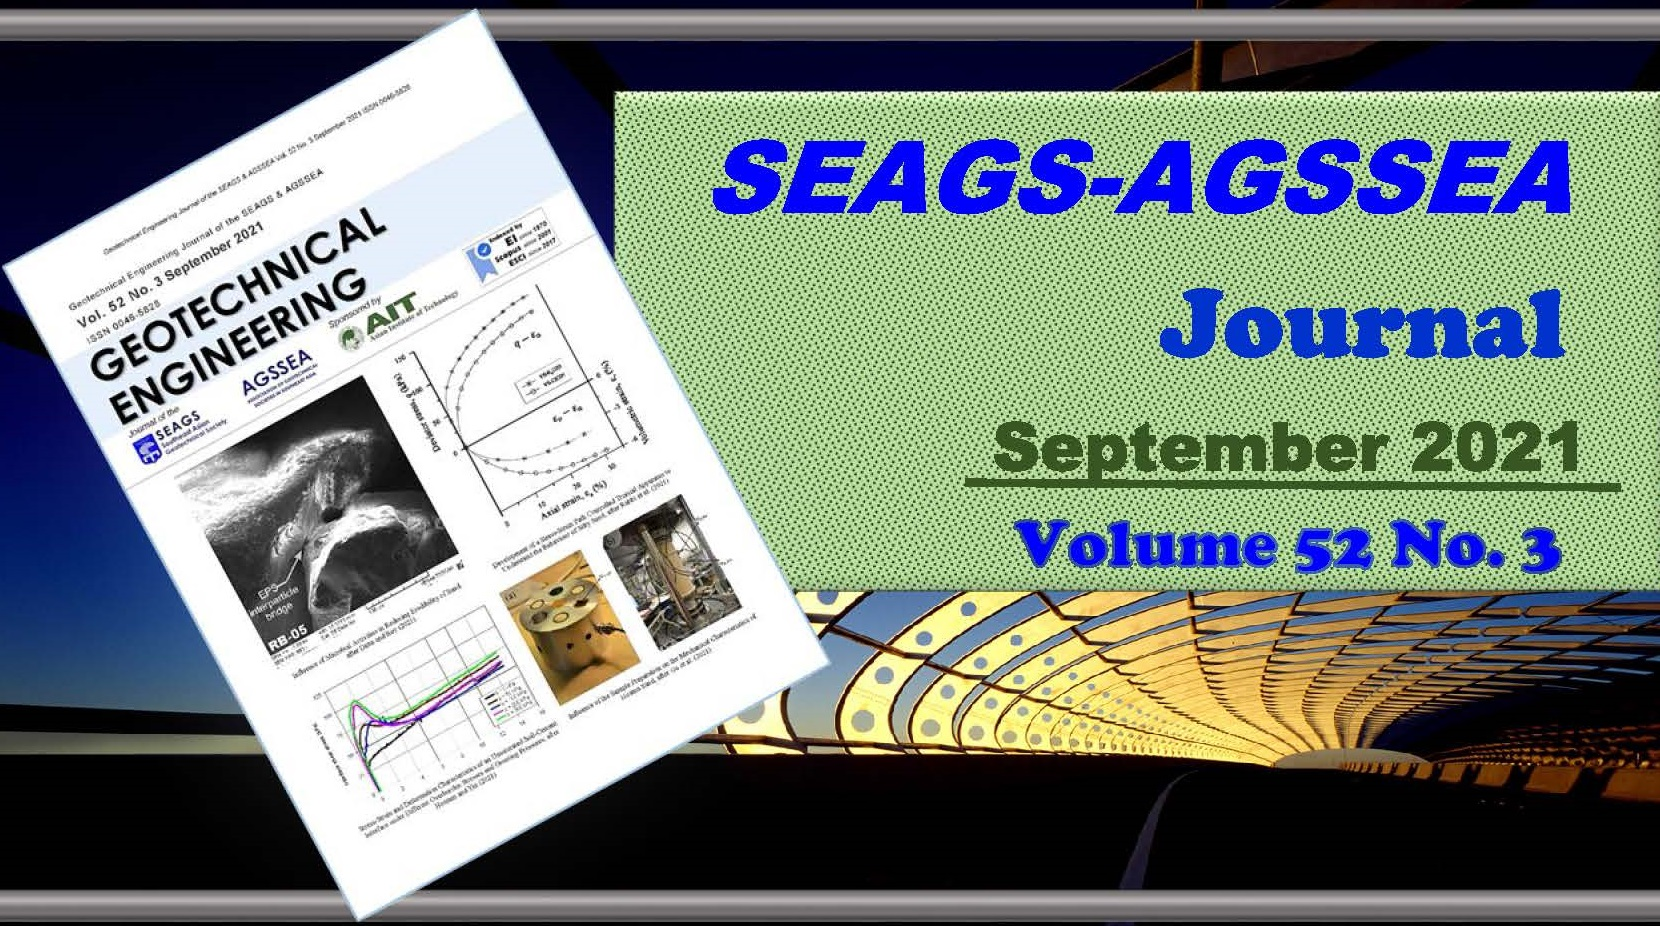 Geotechnical Engineering Journal of the SEAGS & AGSSEA Vol. 52 No. 3 September 2021 ISSN 0046-5828 Sponsored by:Asian Institute of Technology ContentsandAbstracts Influence of Microbial Activities in Reducing Erodibility […]